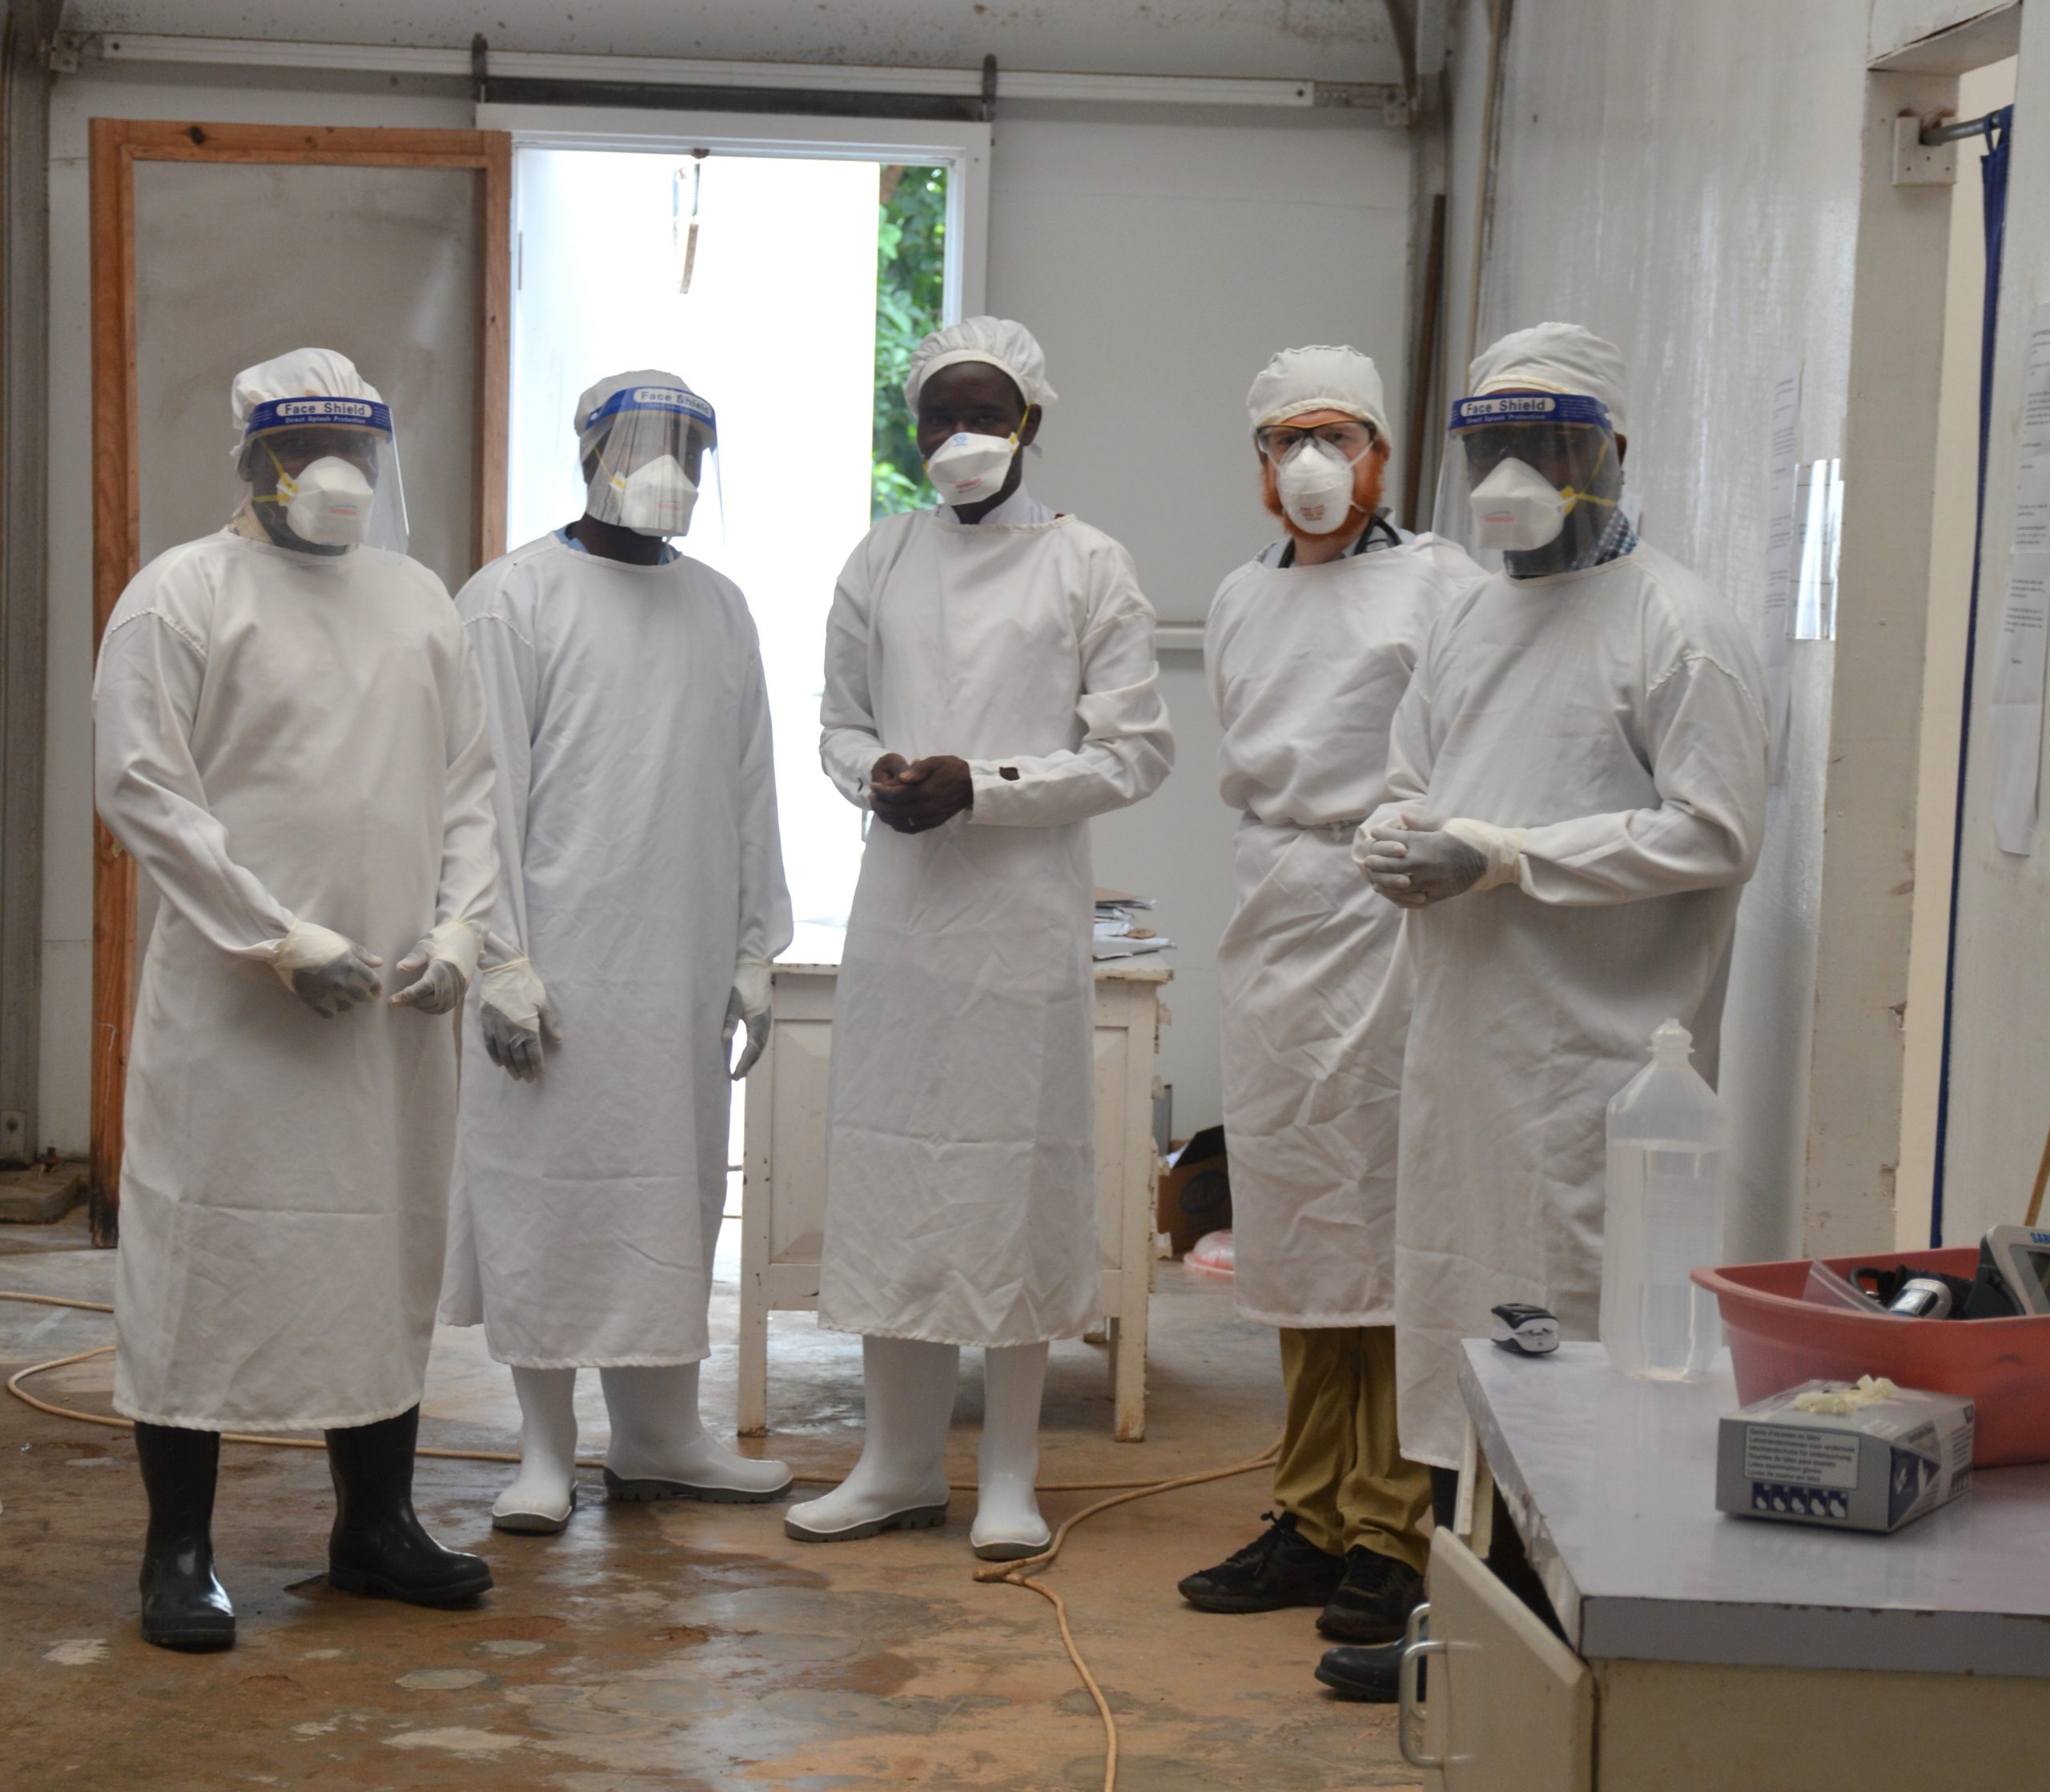 Five people in a health facility in full COVID personal protective great including masks and gloves.